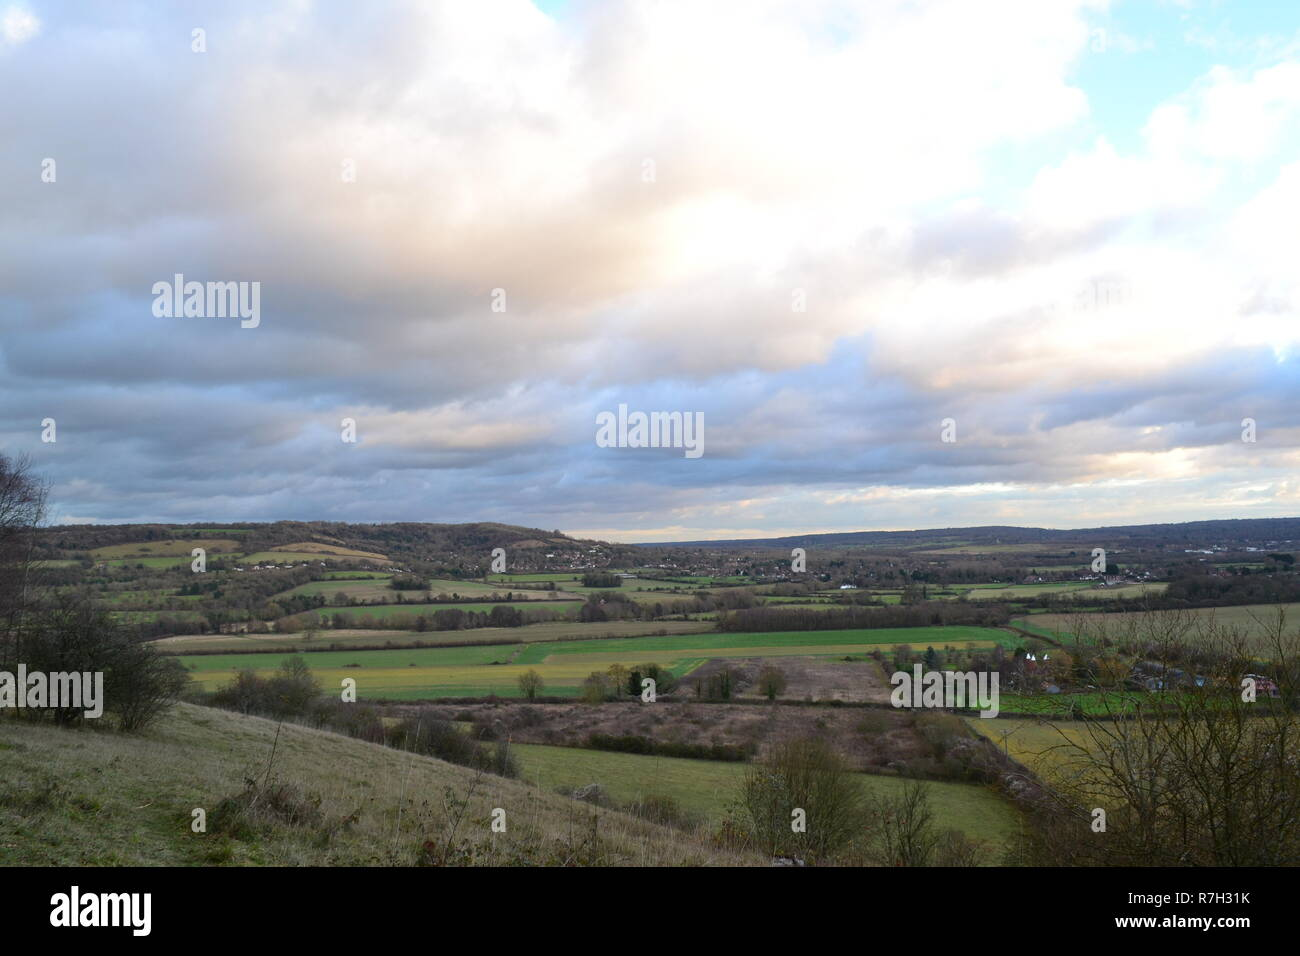 Polhill Bank is an SSSI chalk grassland area in Kent, England managed by Kent Wildlife Trust. A dull day in December but still a lovely view - Stock Image